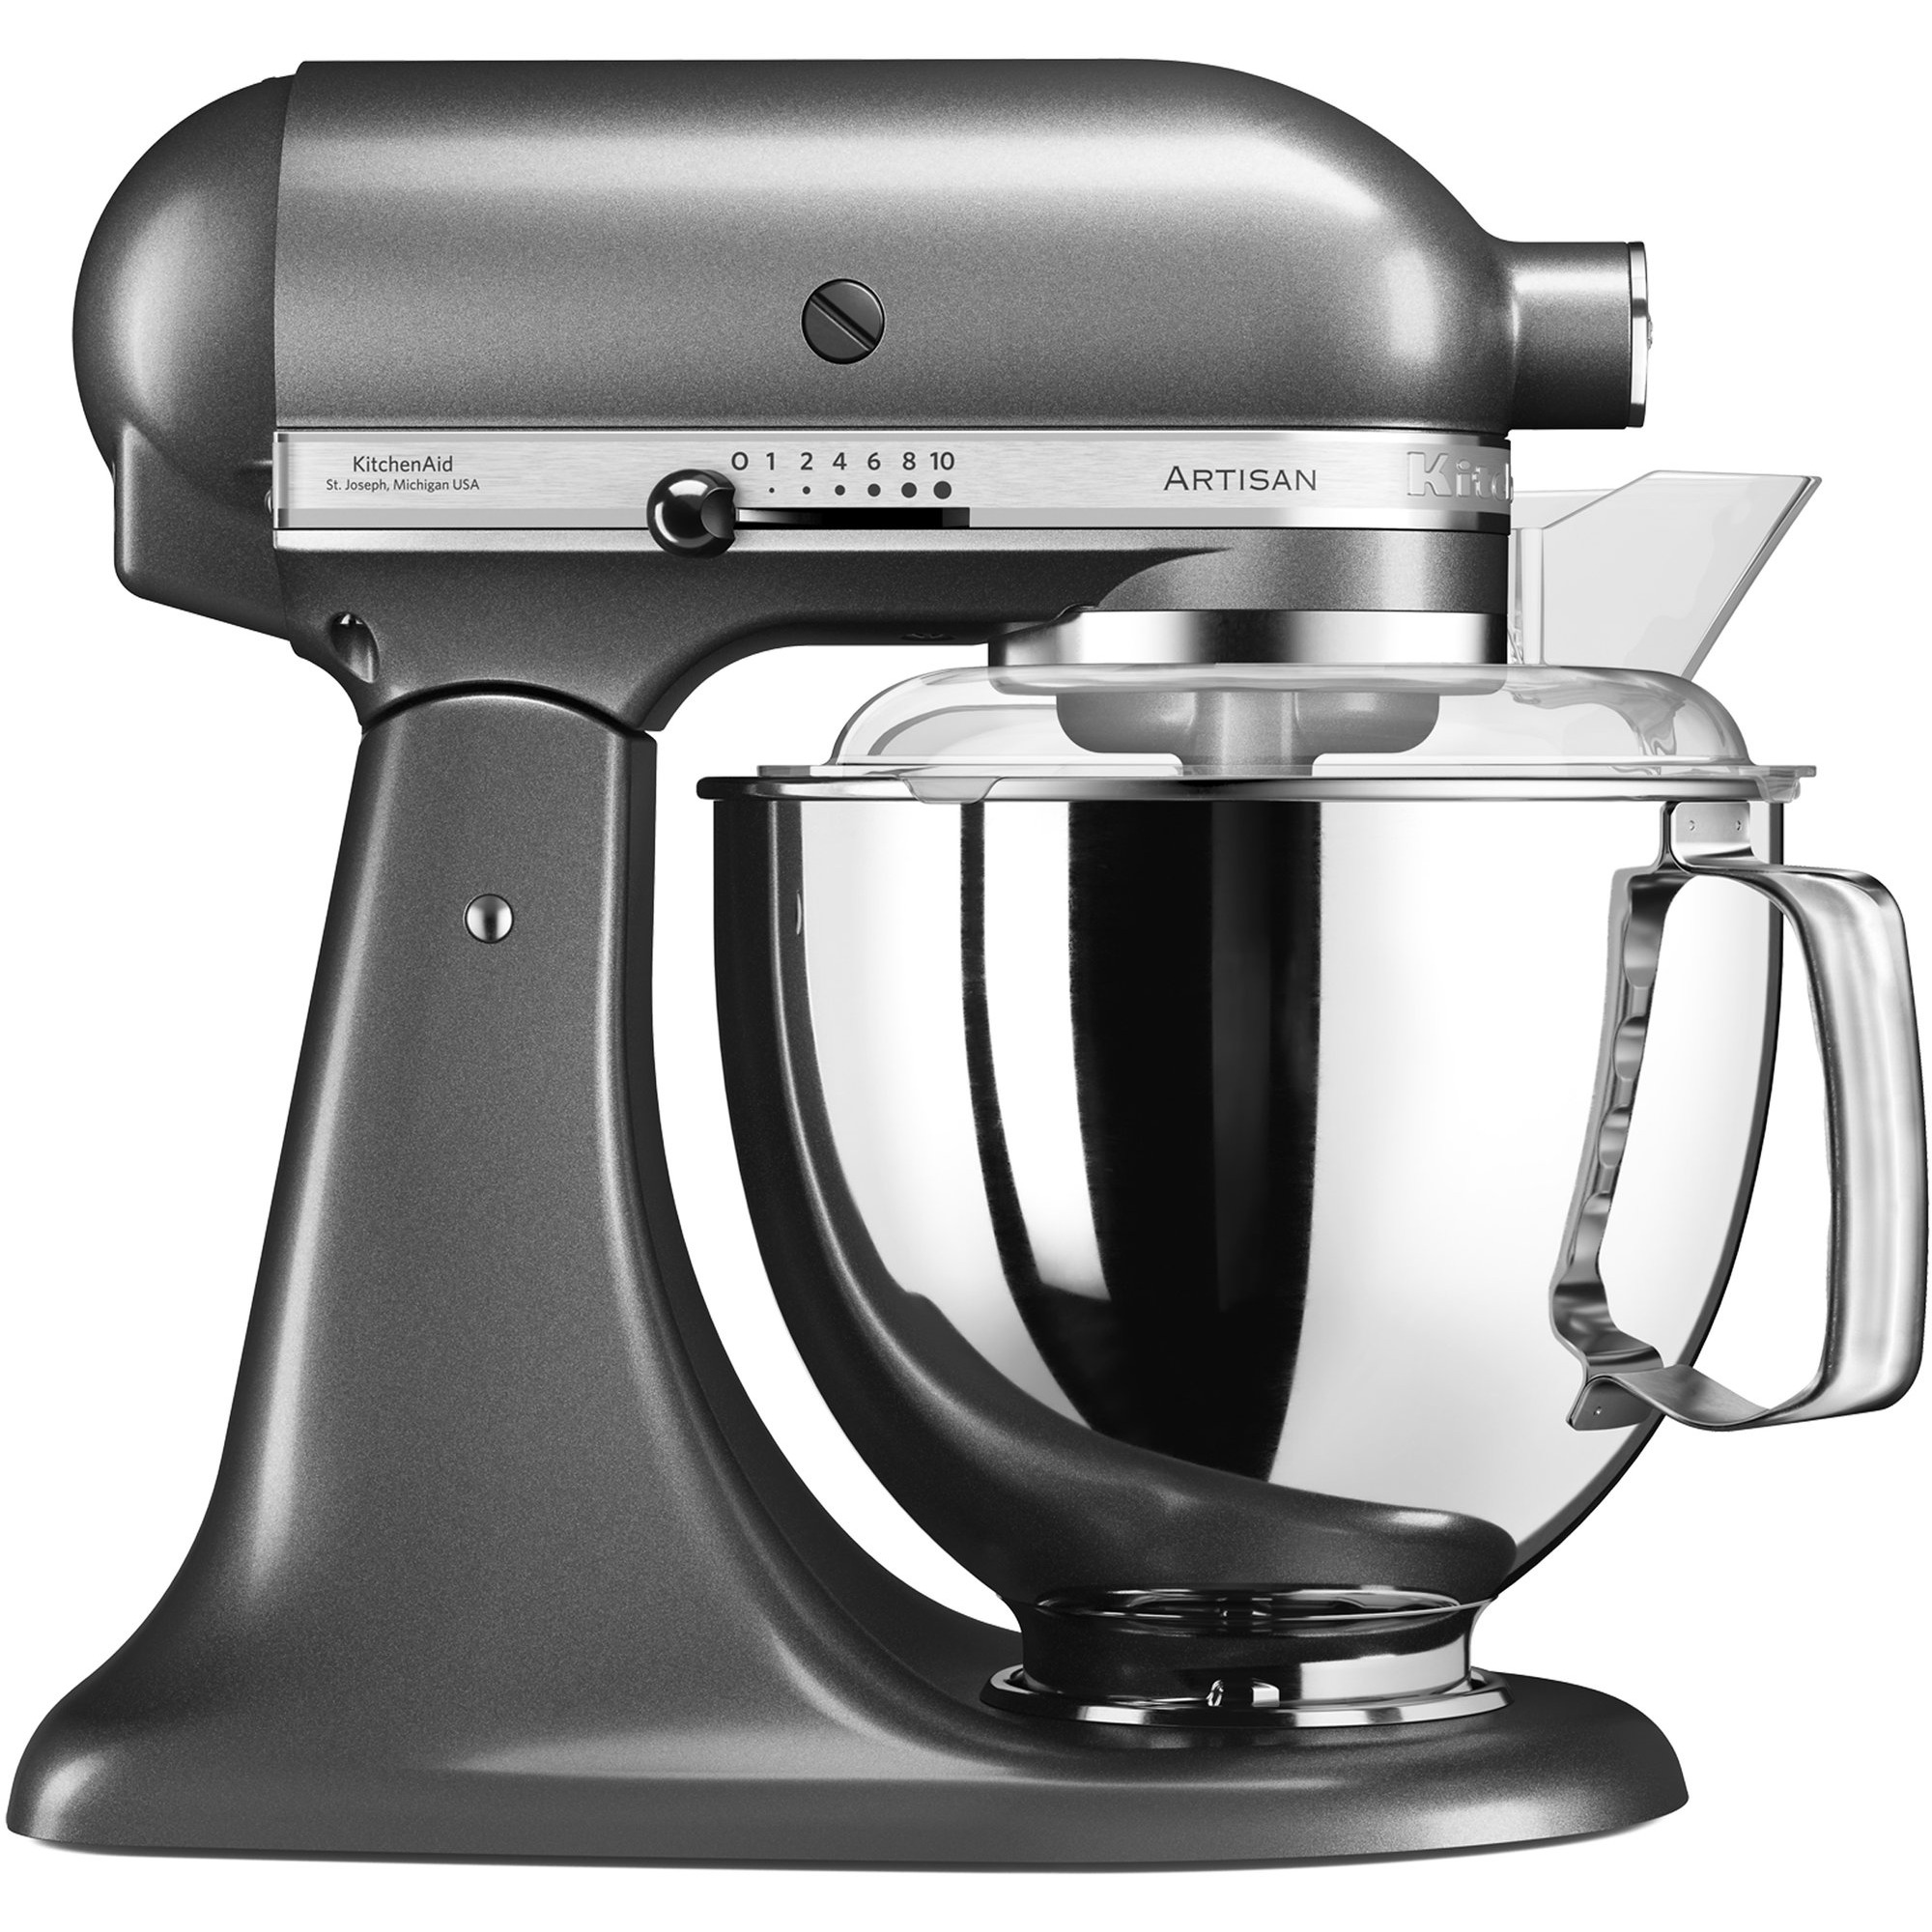 KitchenAid Artisan KSM175PSEMS Grafit Metallic